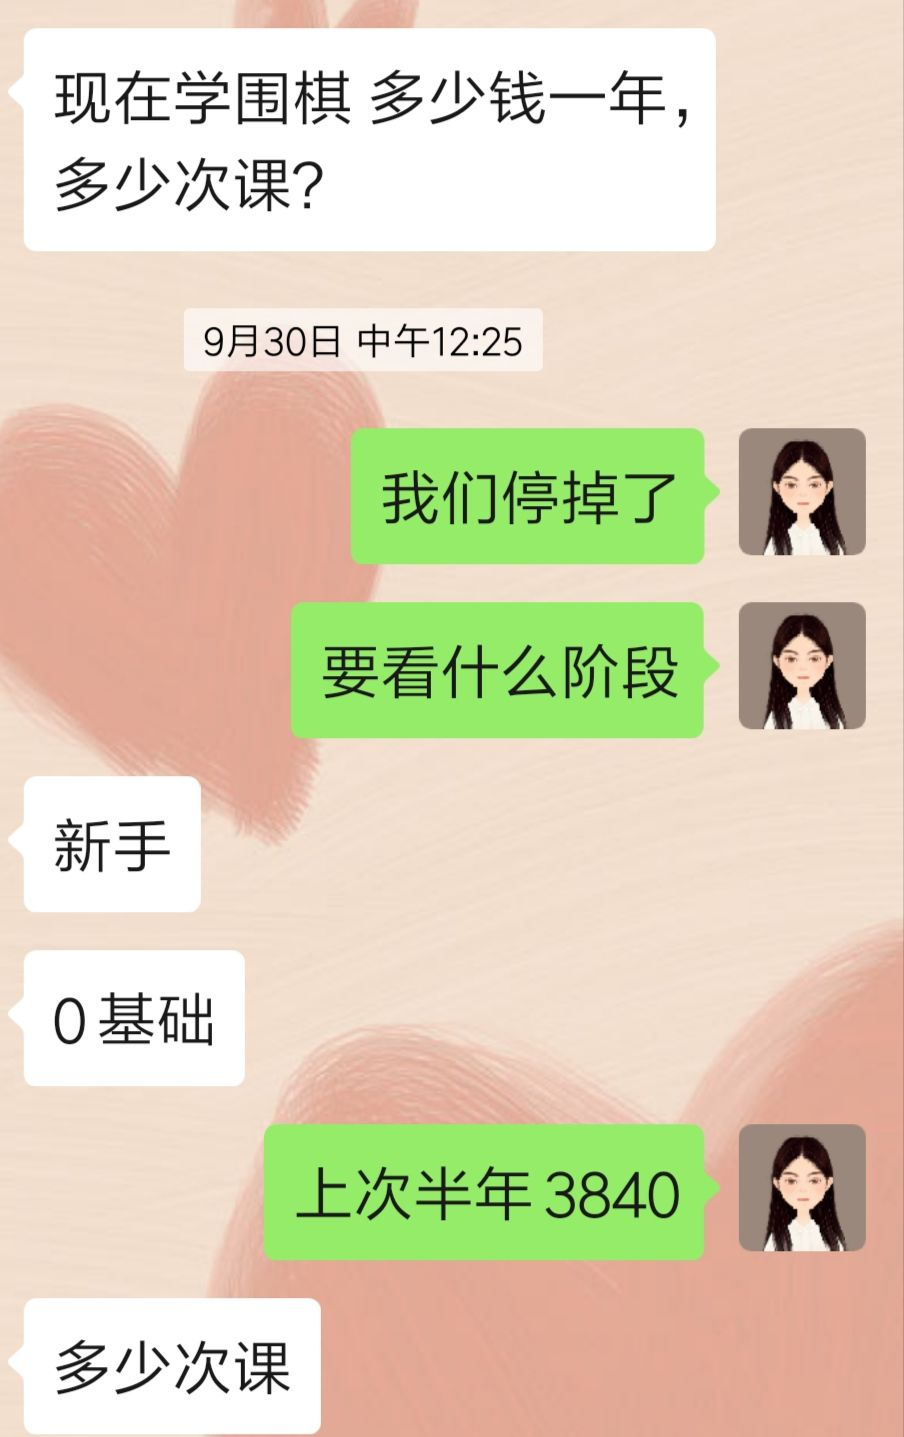 Screenshot_2019-10-10-14-36-14-892_com.tencent.mm.png